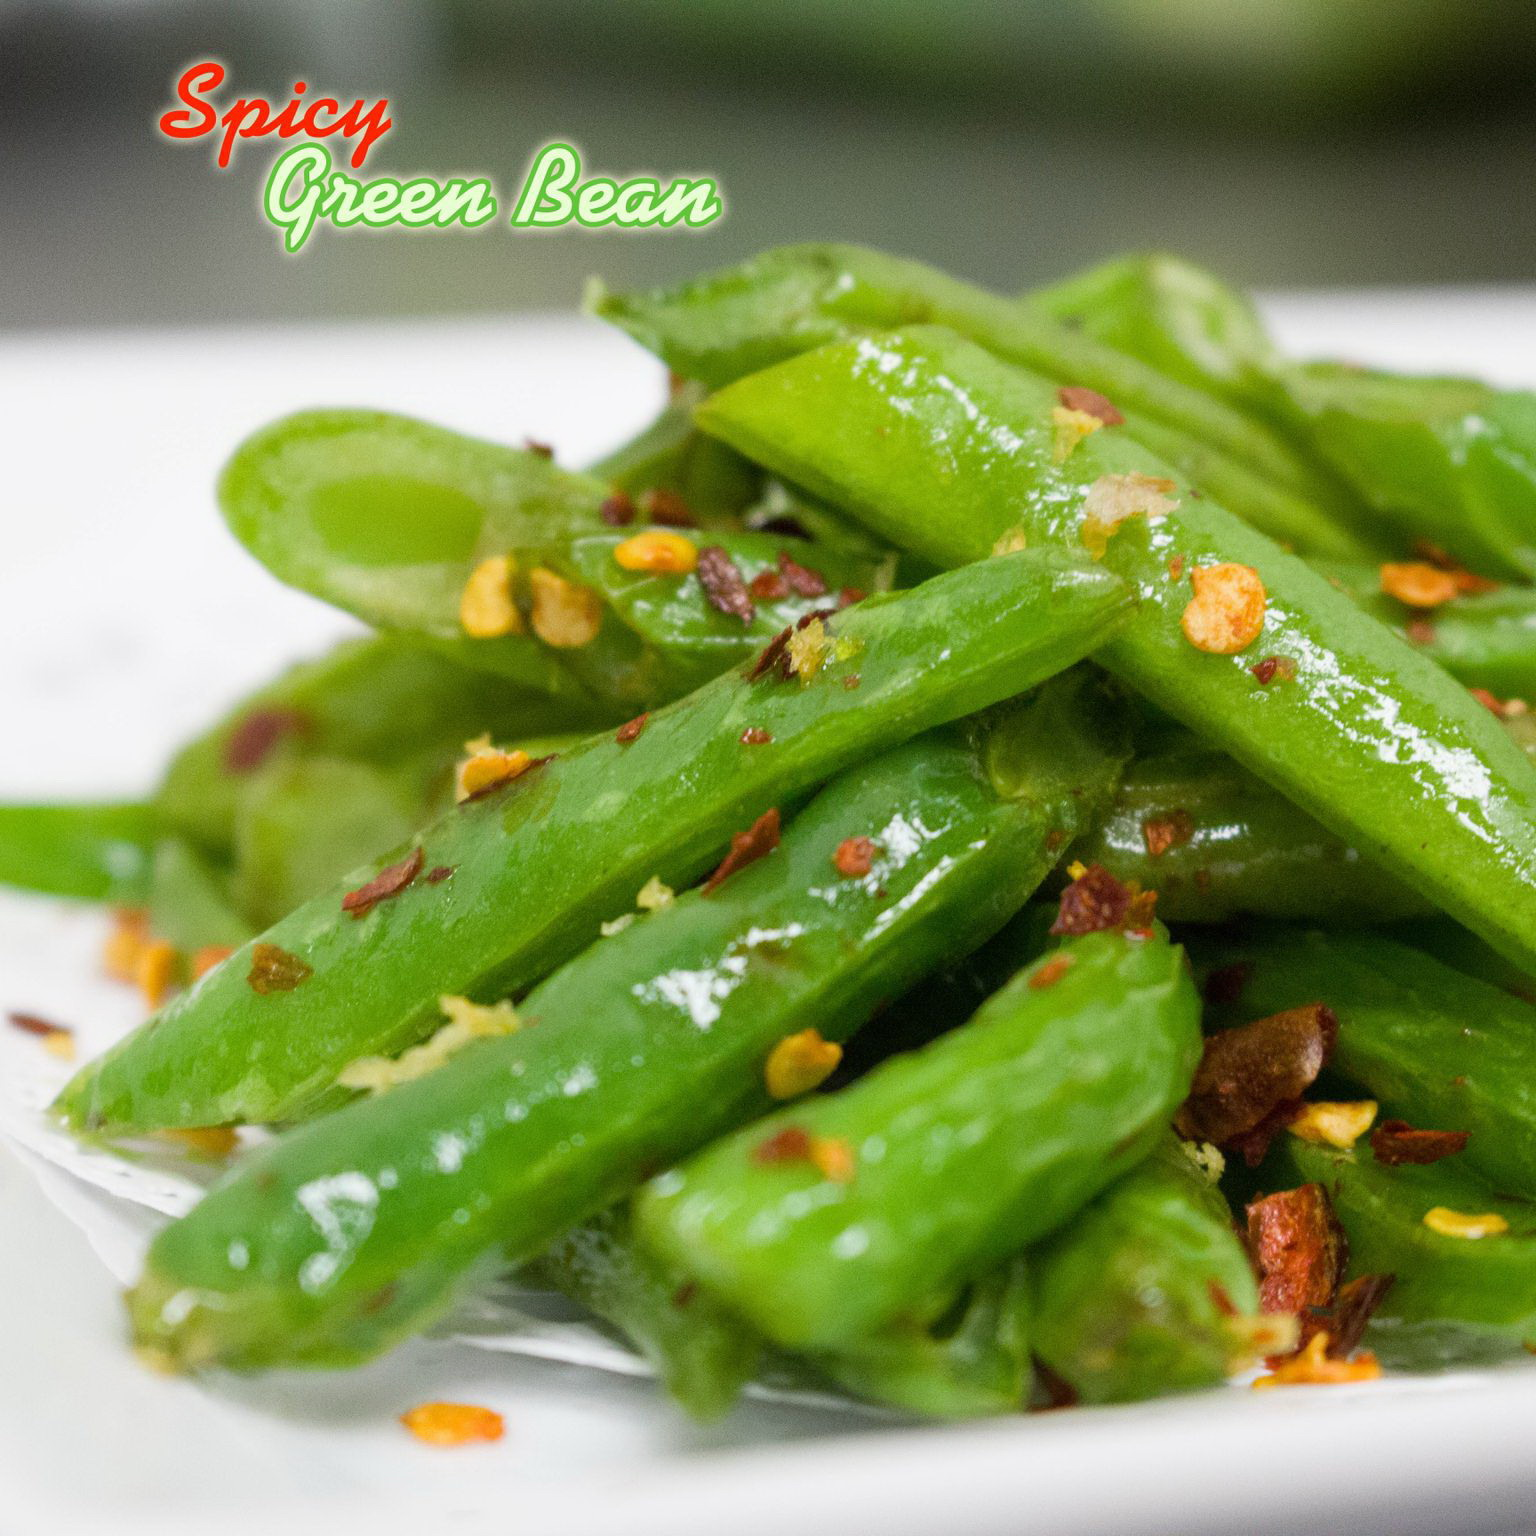 Spicy Garlic Green Bean